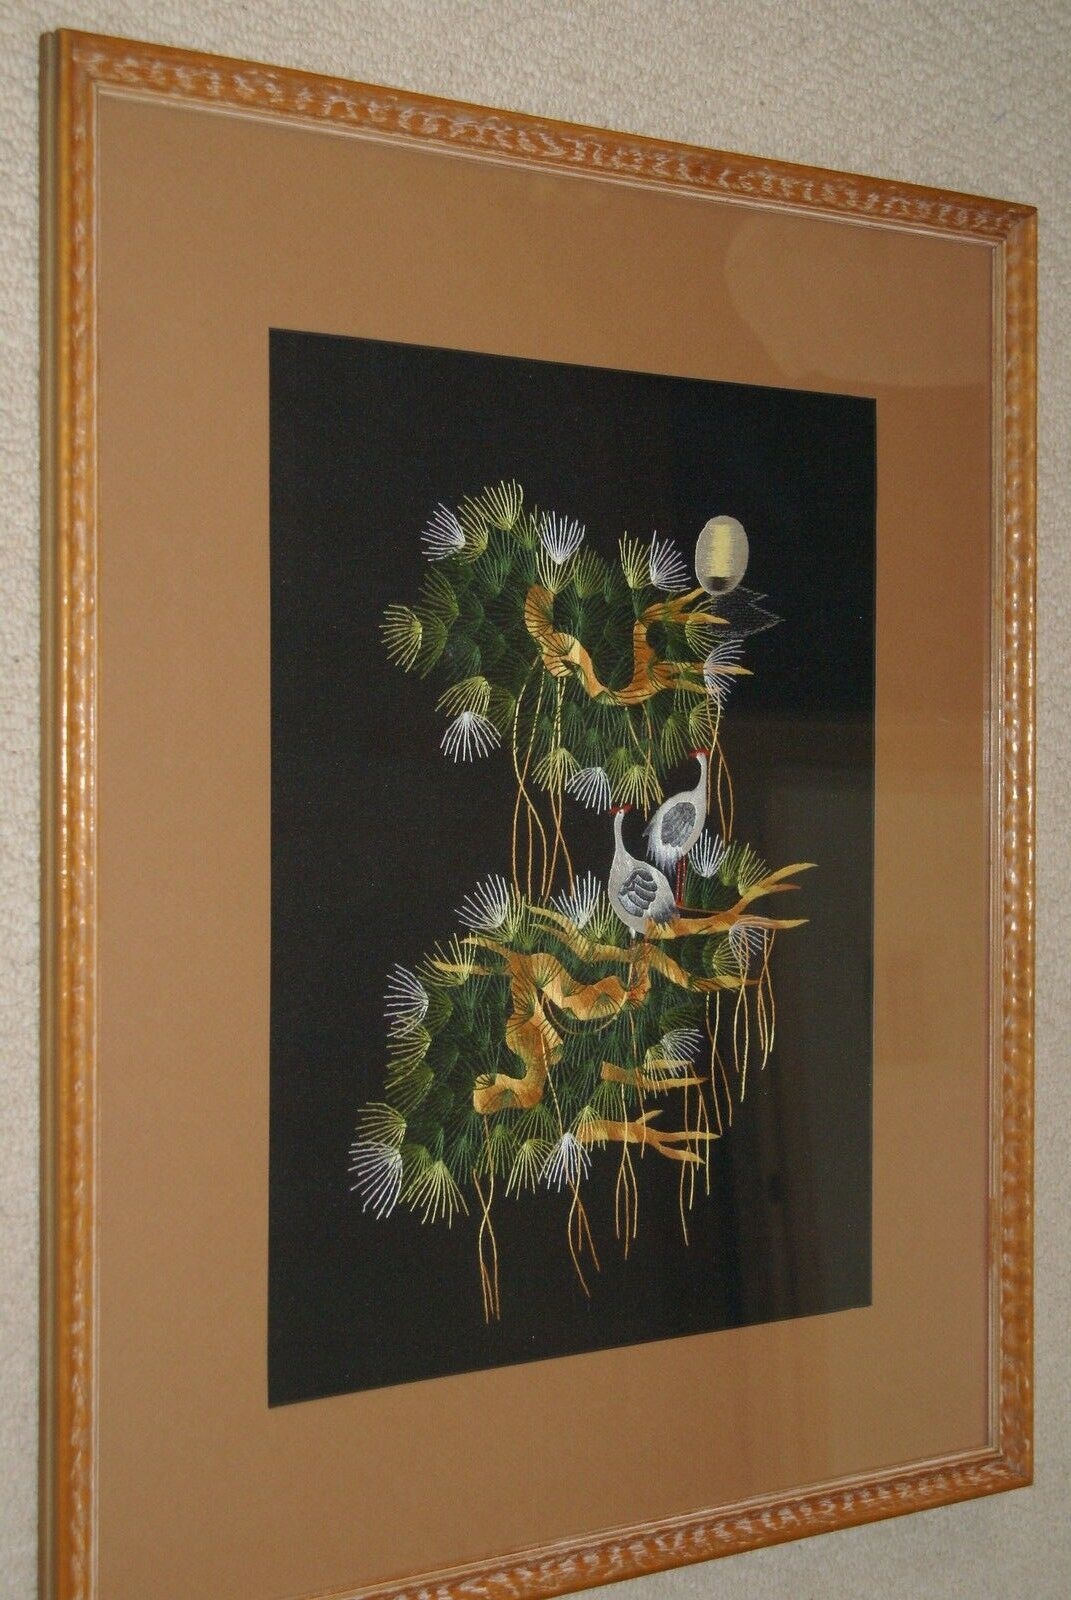 Hmong Floral Bouquet Silk Embroidery Museum Masterpiece Art Matted Framed 38x31-